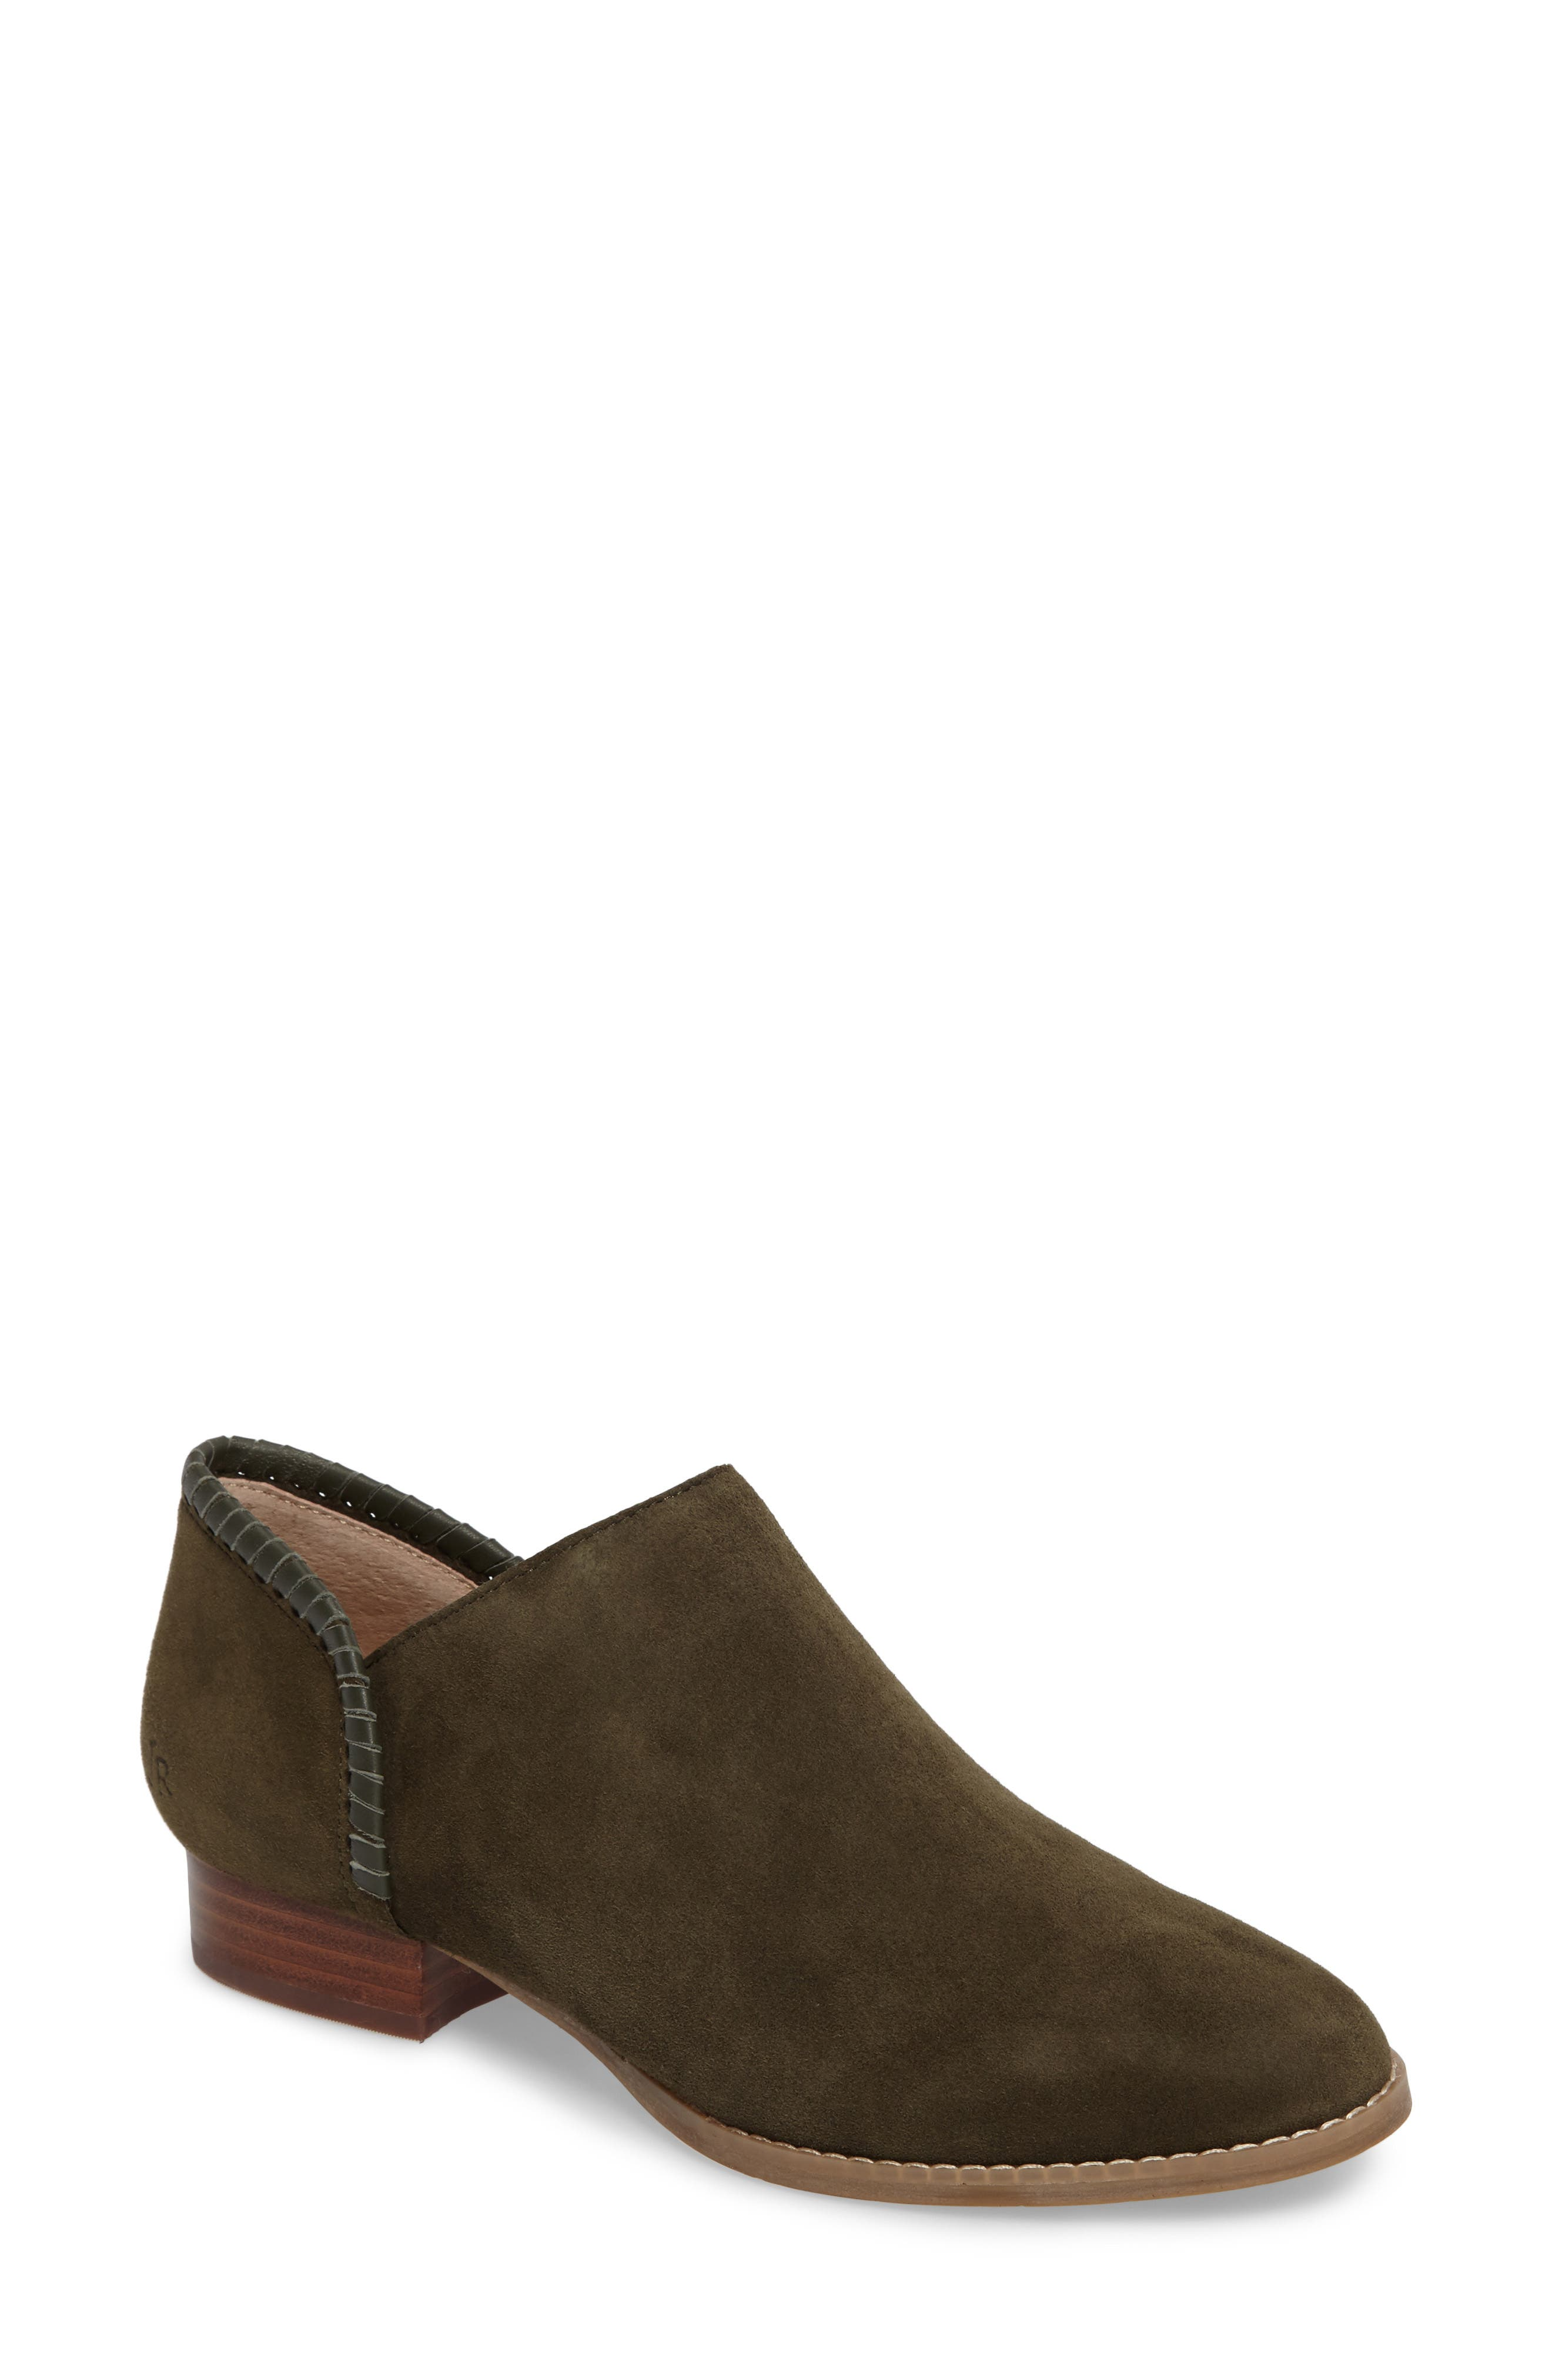 Avery Low Bootie,                         Main,                         color, Olive Suede